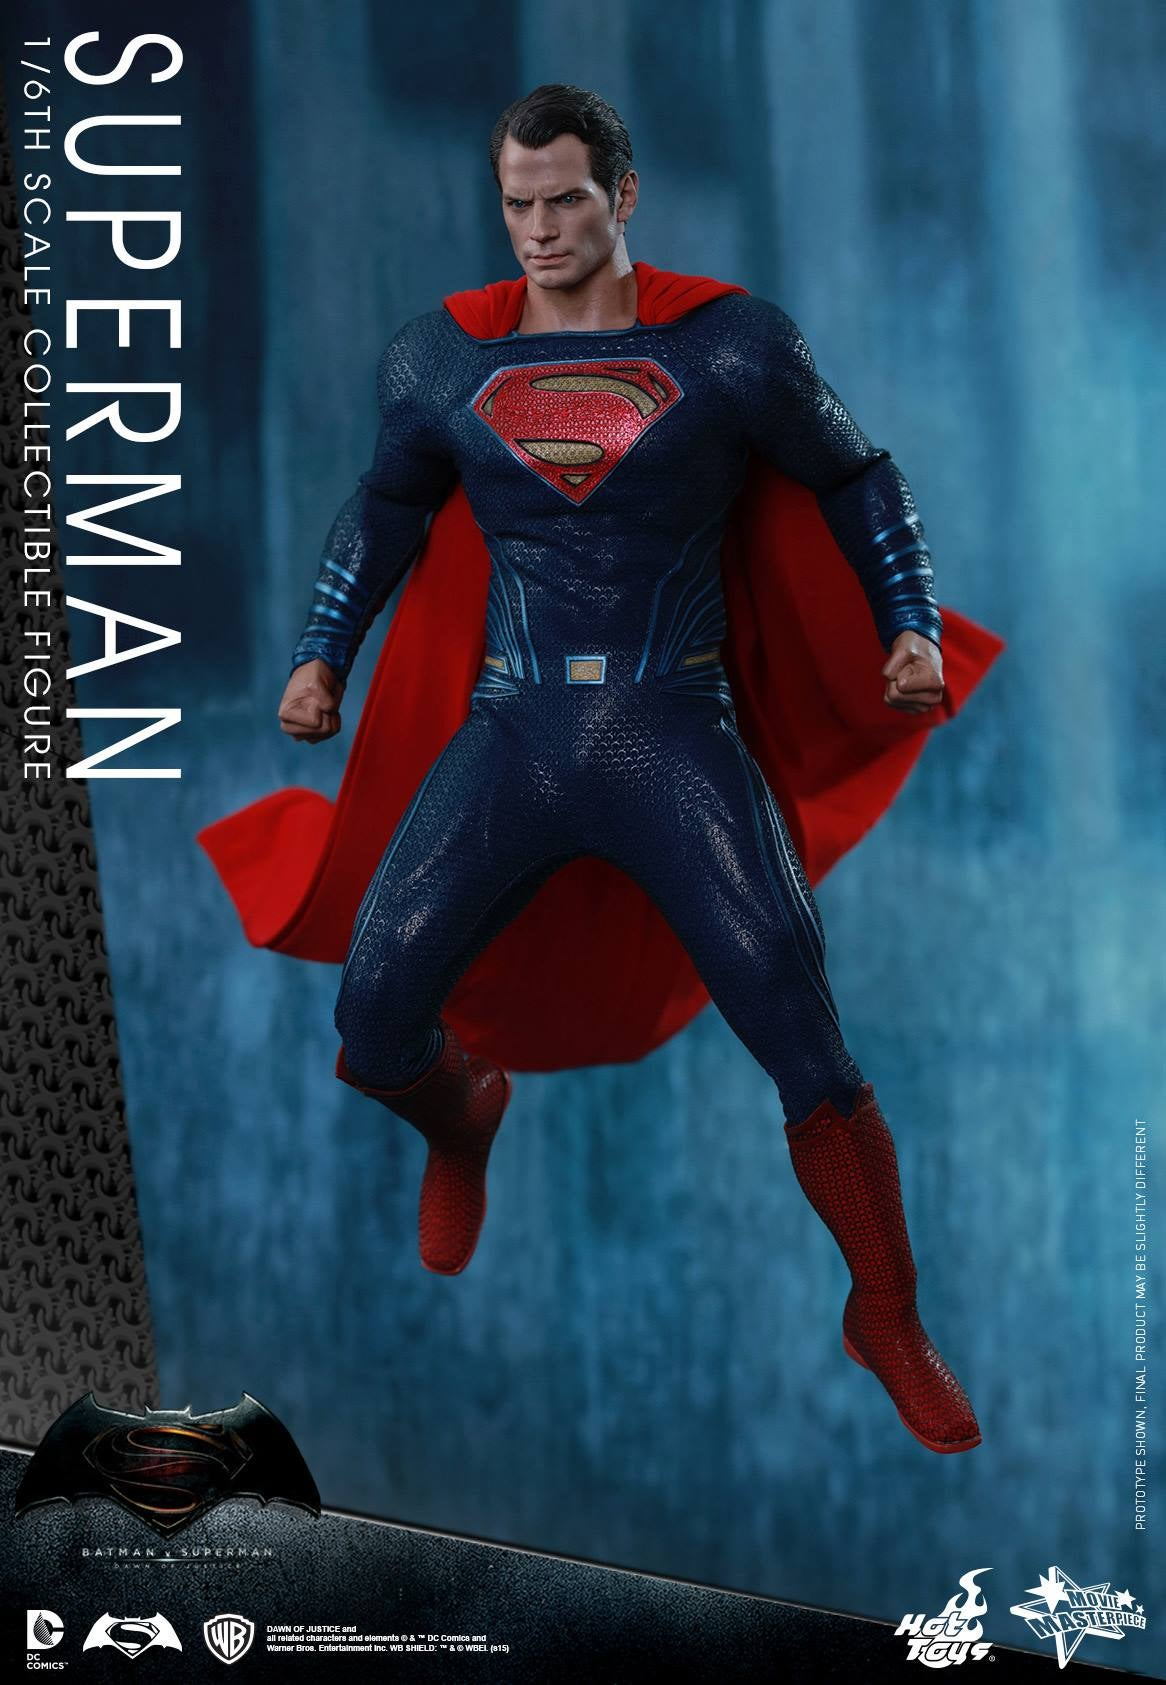 [Action Figures] Todo sobre Action Figures, Hot Toys, Sideshows - Página 6 Bvs-hot-toys-superman-6-162891